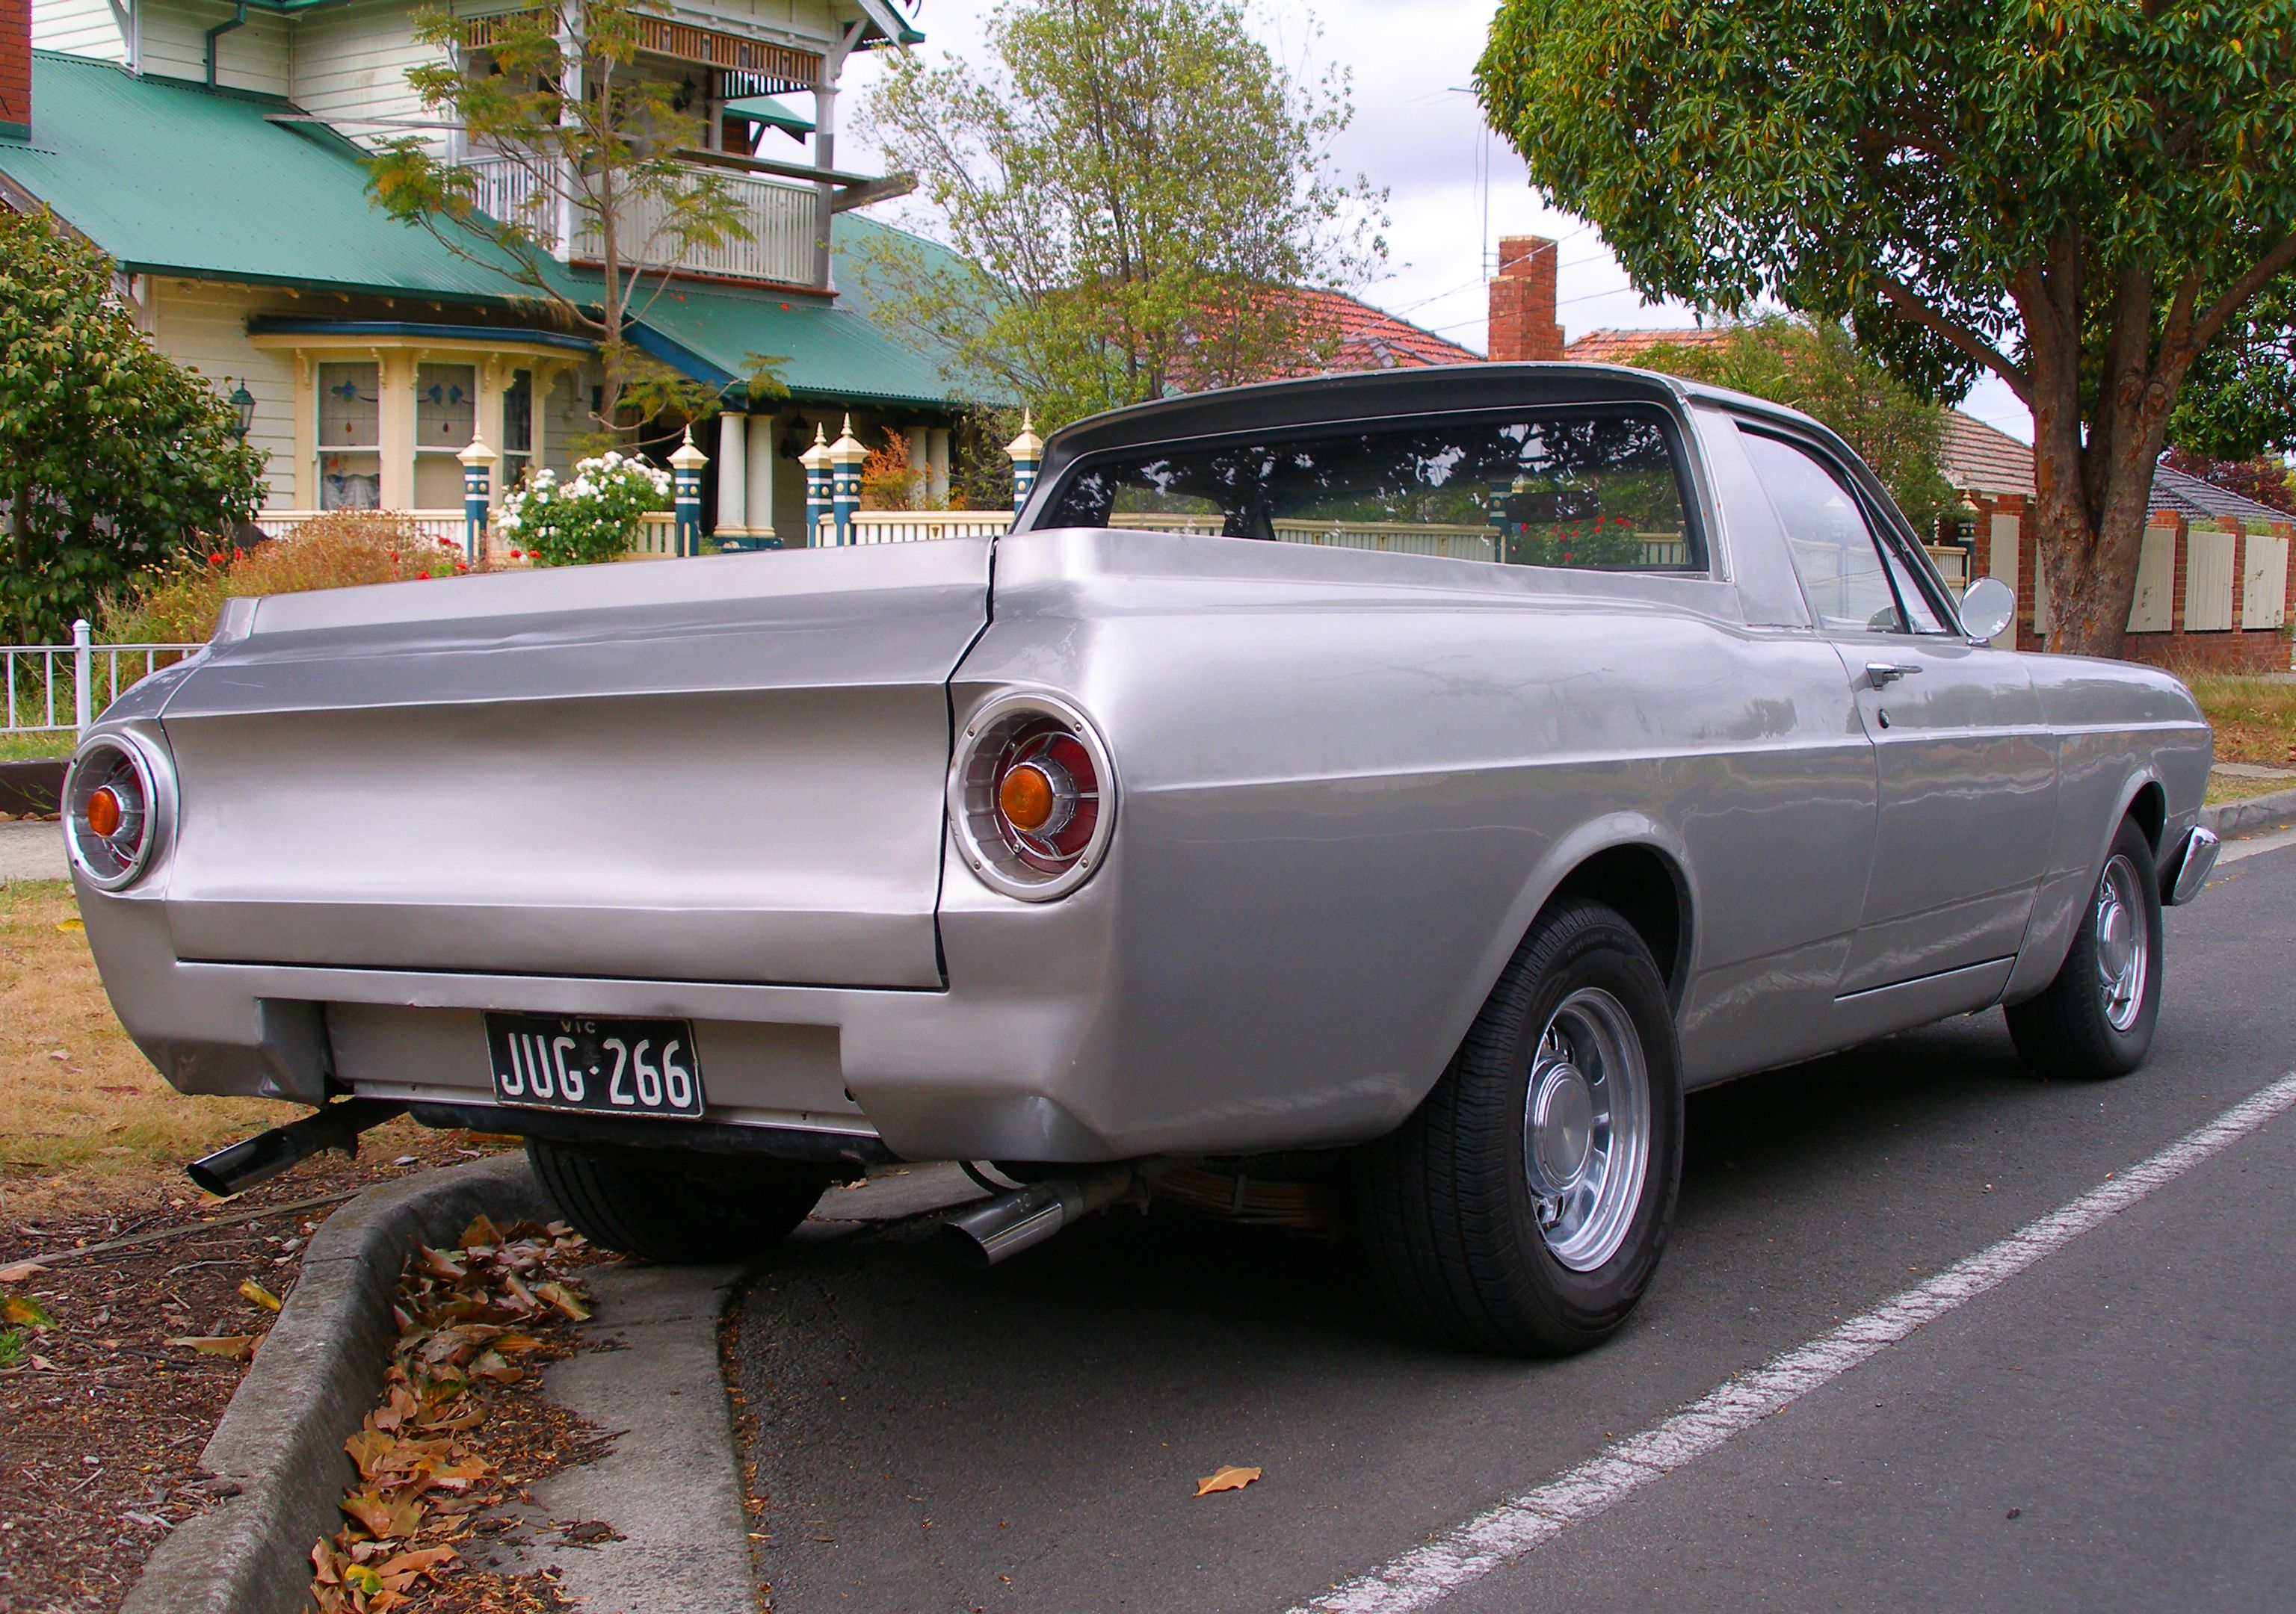 Xr Falcon Ute Google Search Ford Falcon Dream Cars Classic Cars